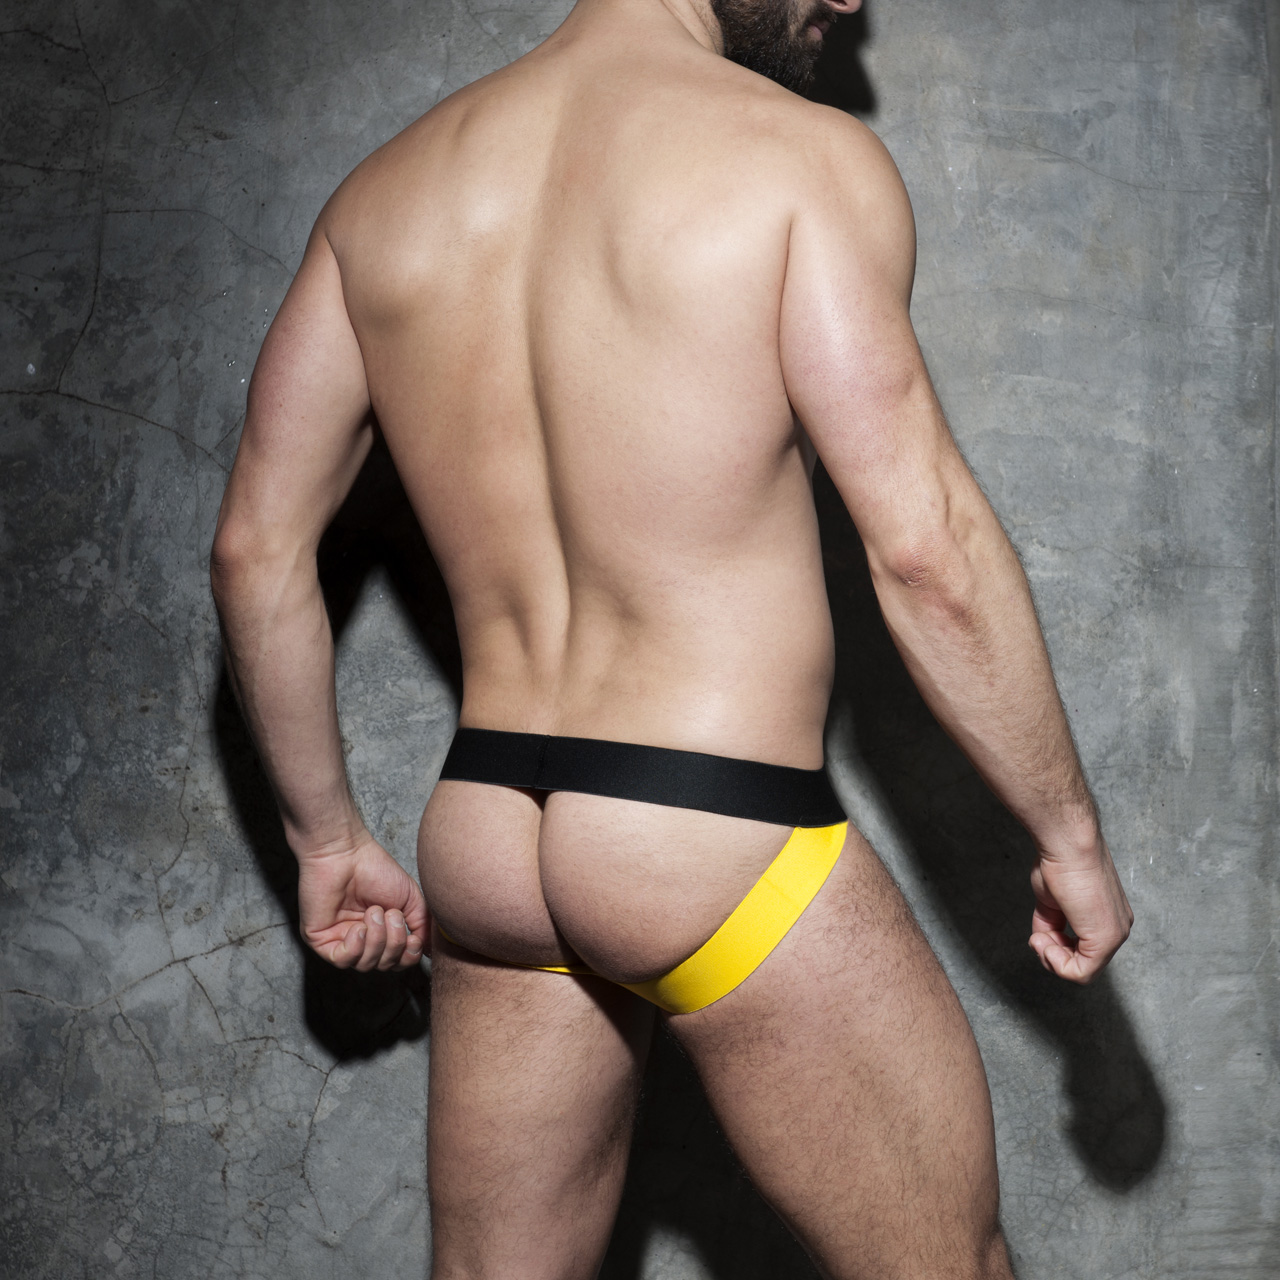 ADDICTED FETISH ZIPPER CAMO JOCK - Yellow